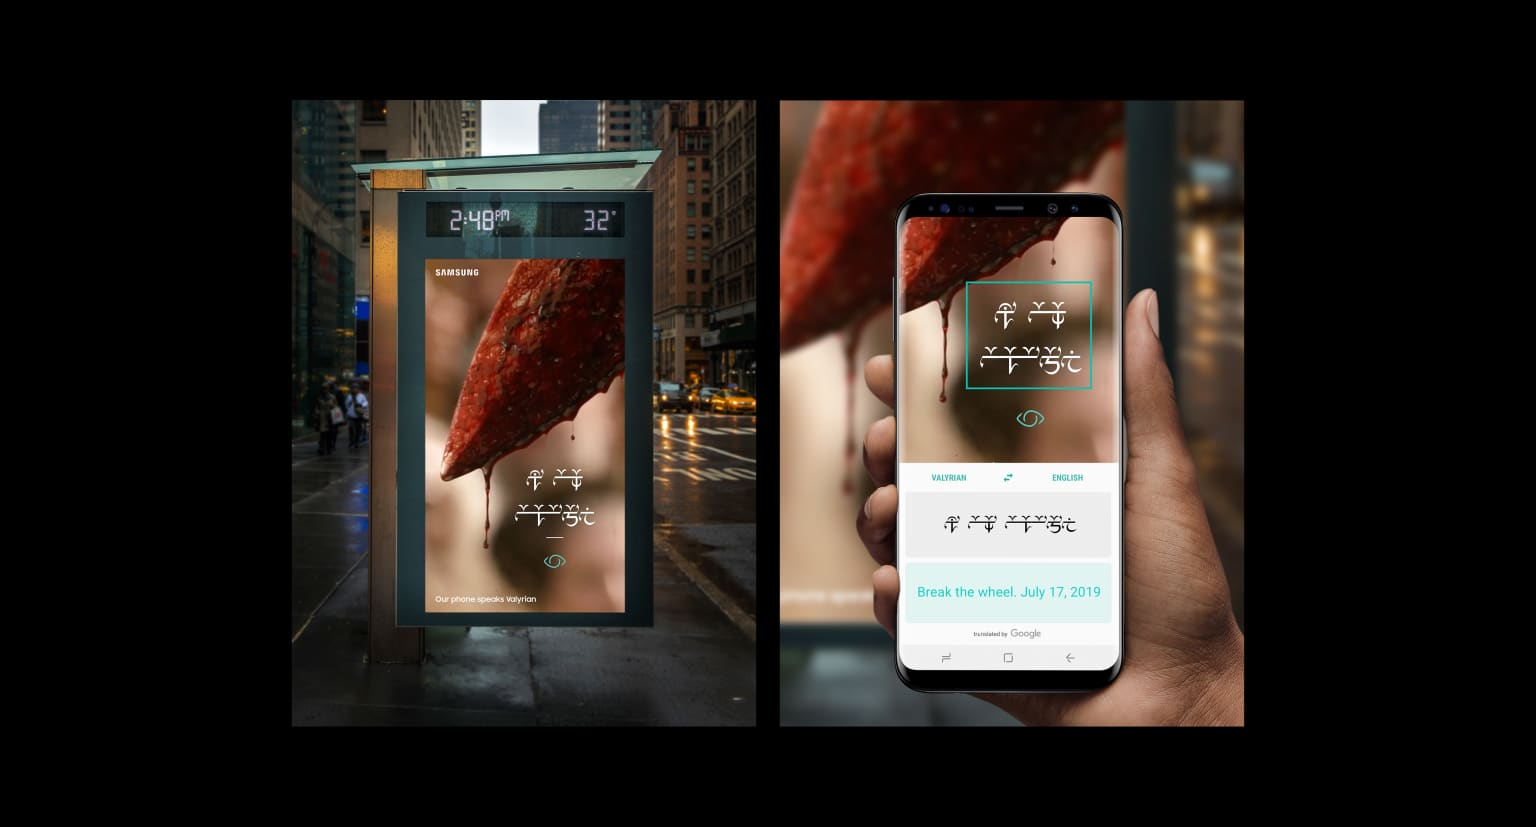 Our Phone Speaks Valyrian - Samsung+HBO